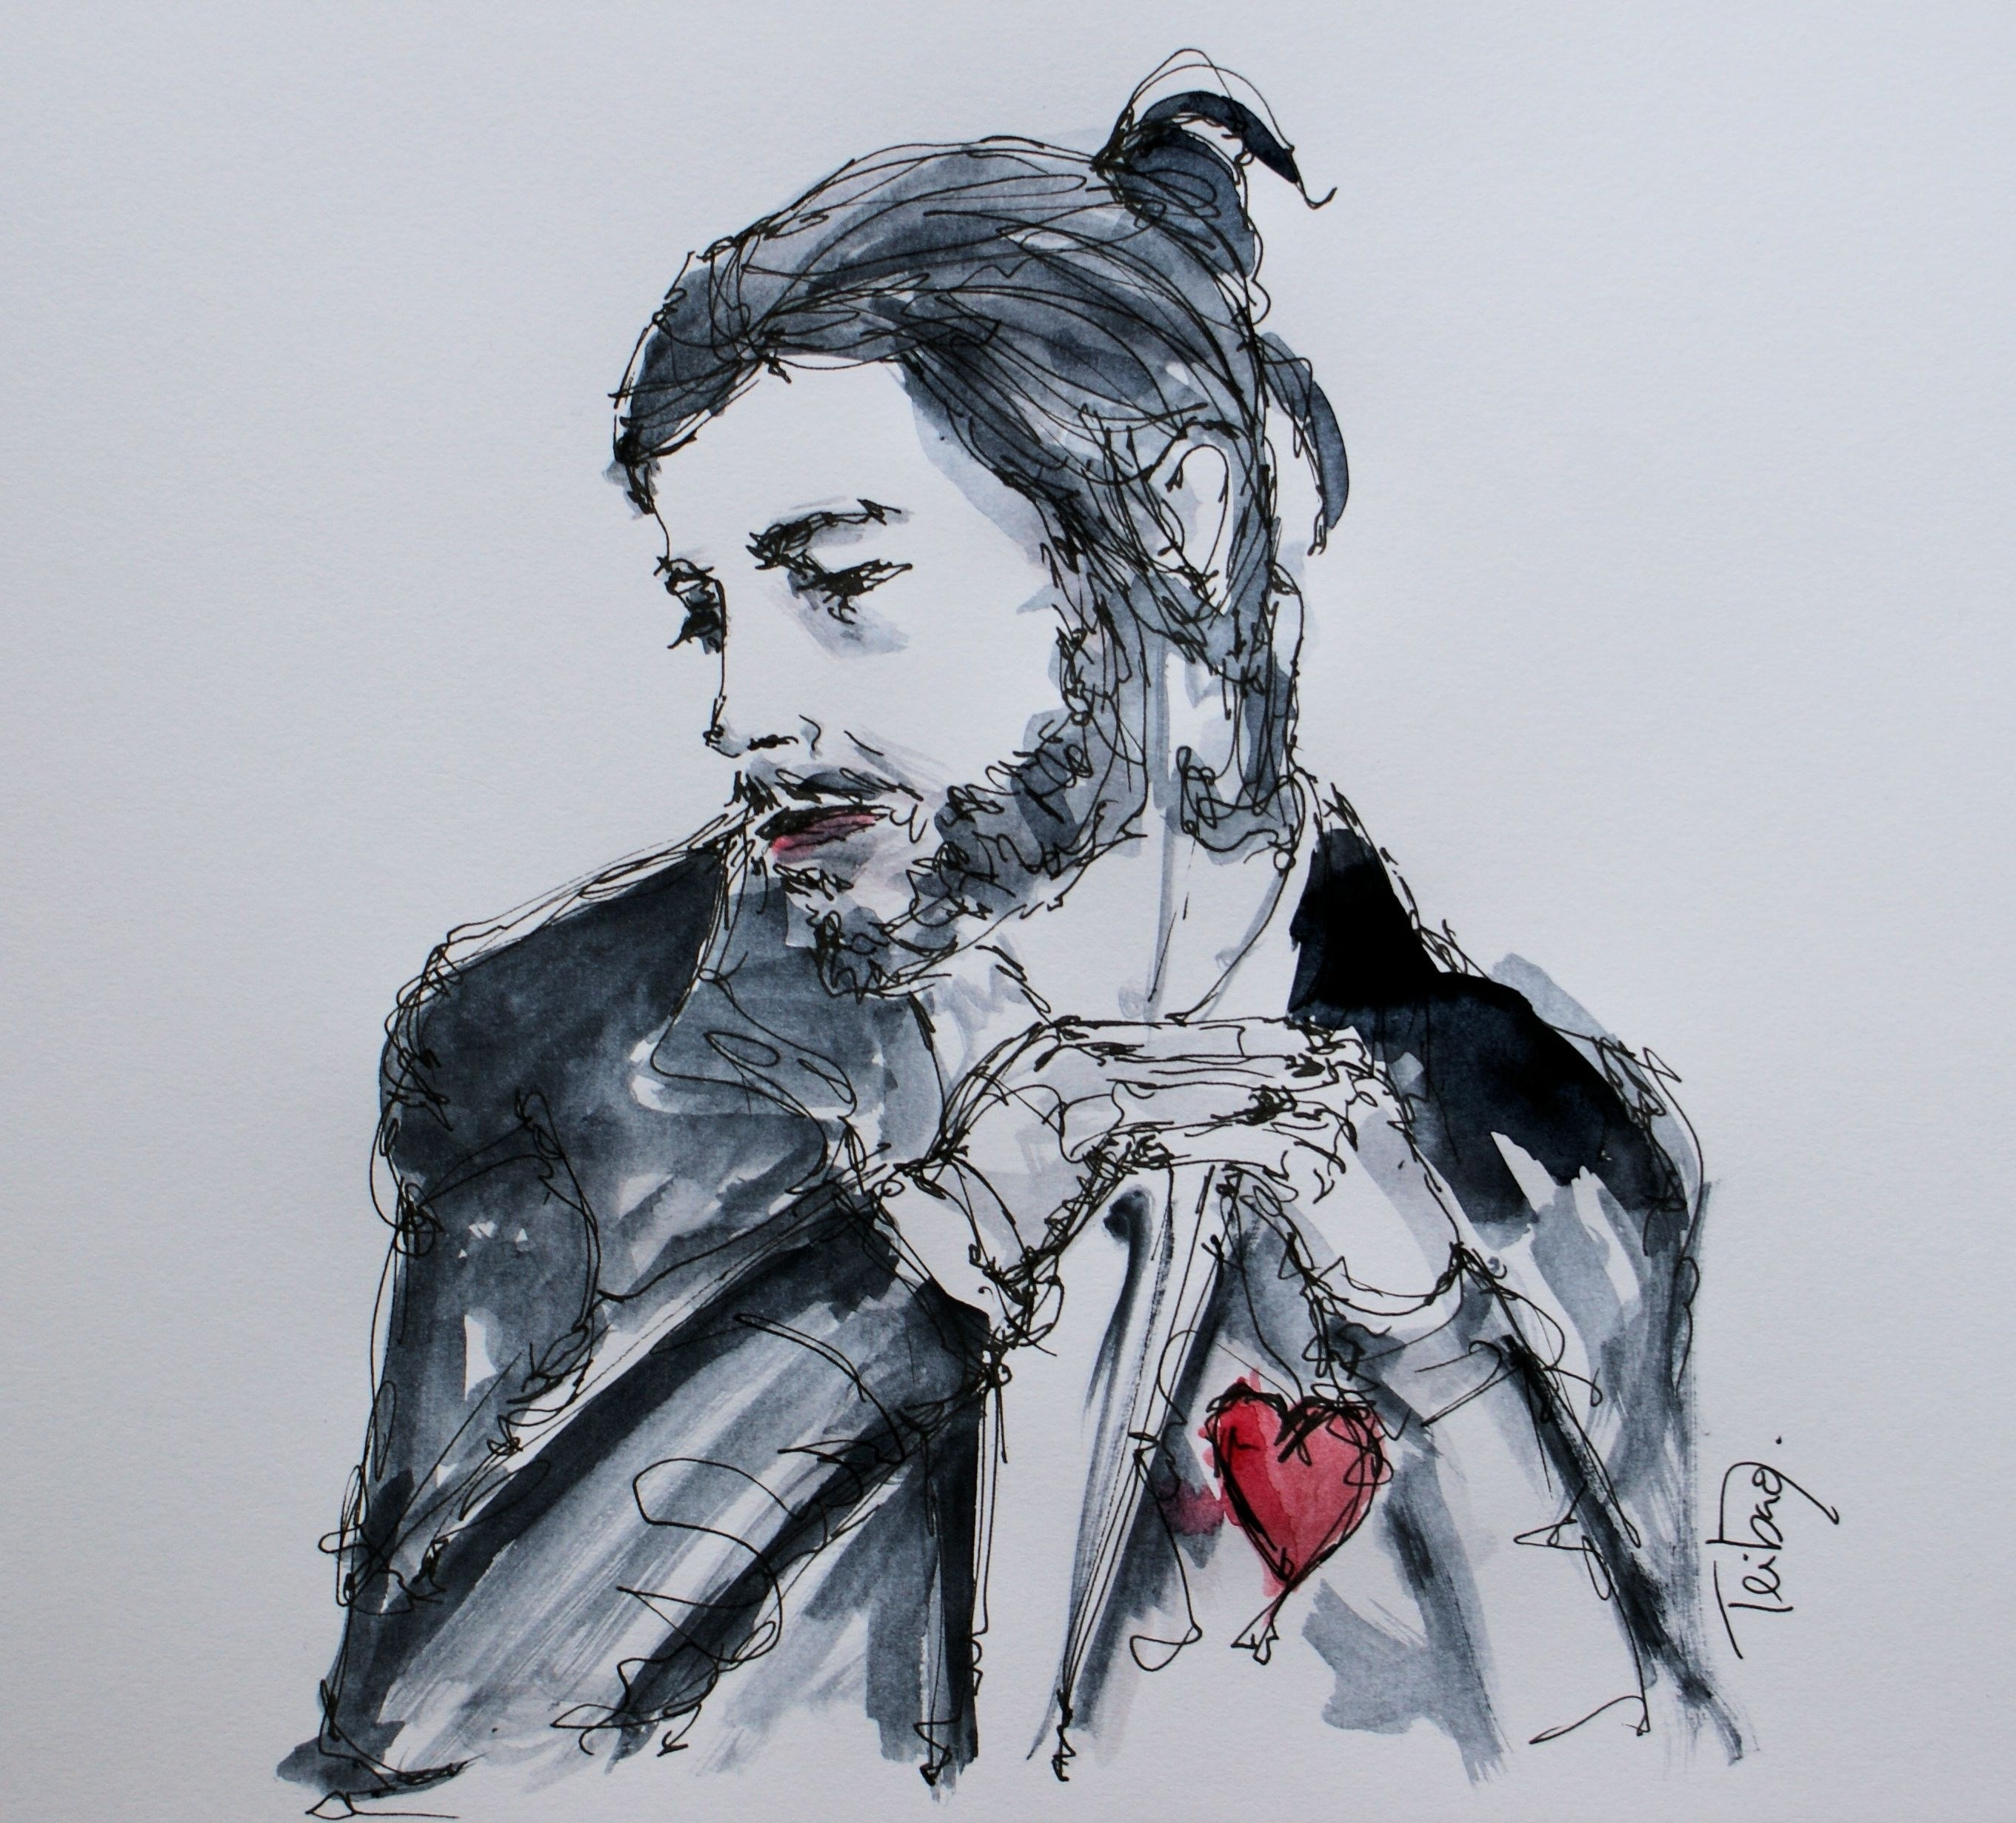 Tributo a Salvador Sobral, original Man Pen Drawing and Illustration by Zé Teibão